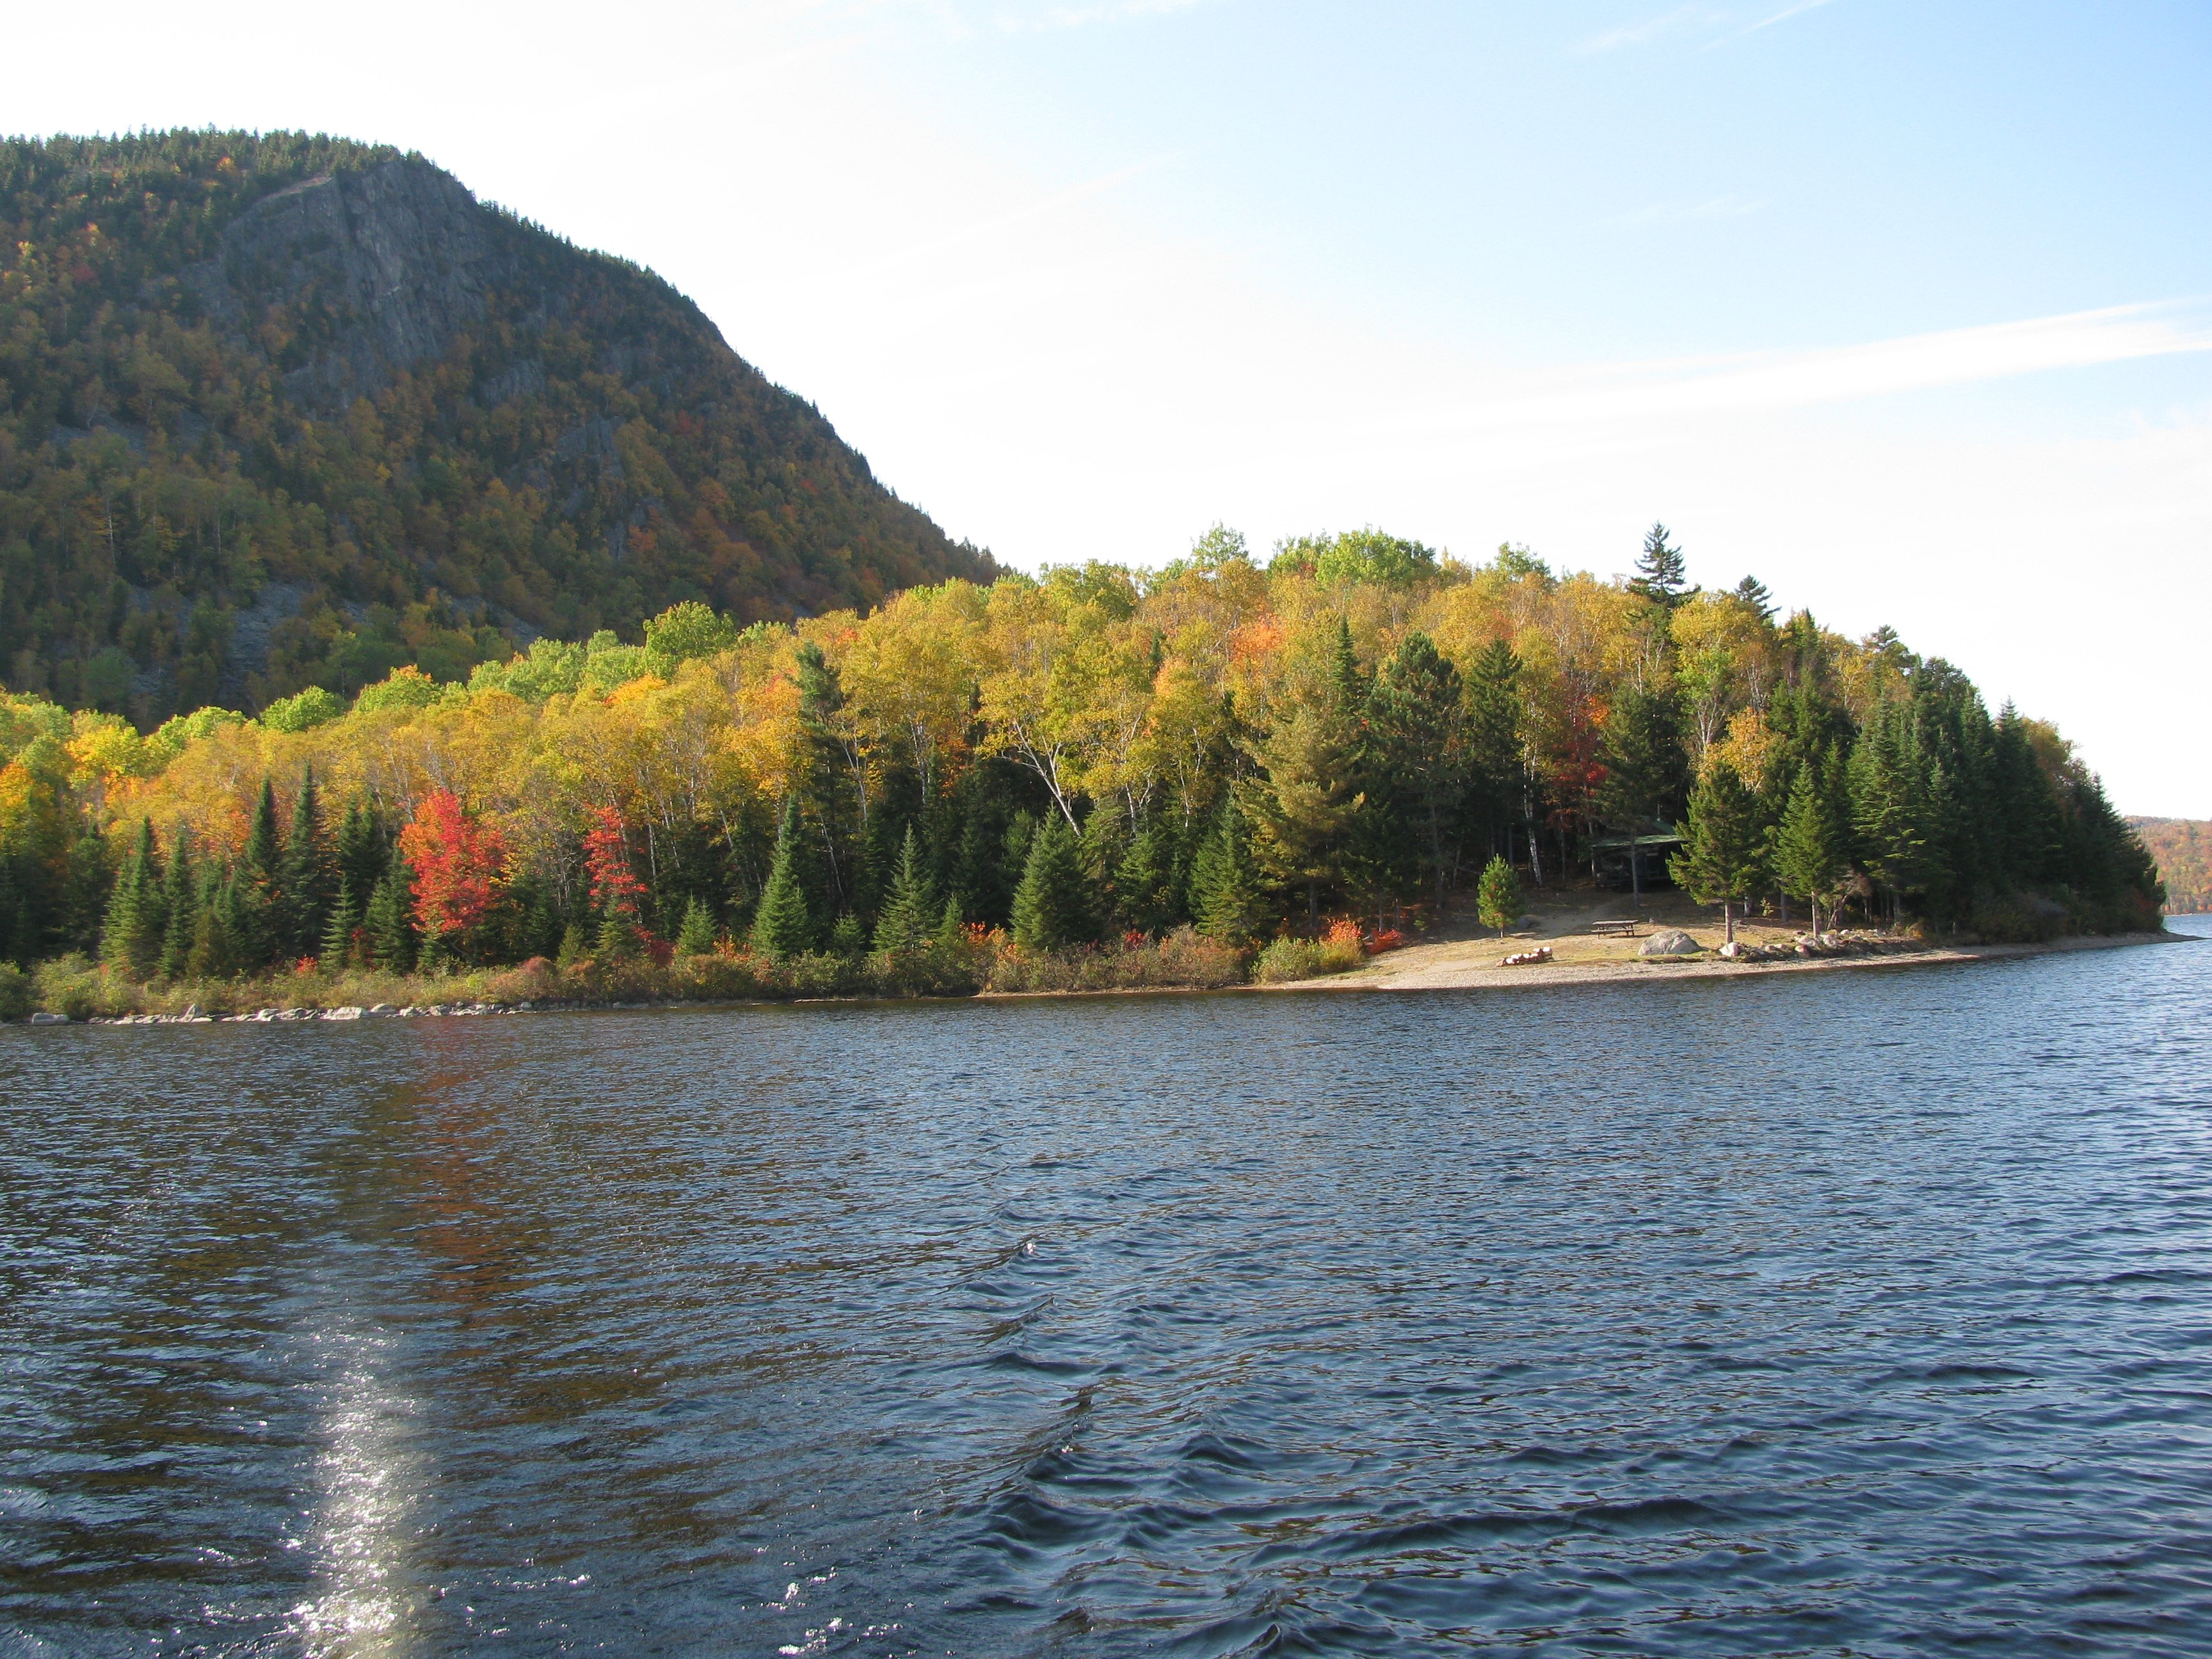 Stay in our remote cabin for a unique wilderness experience- Access by boat only